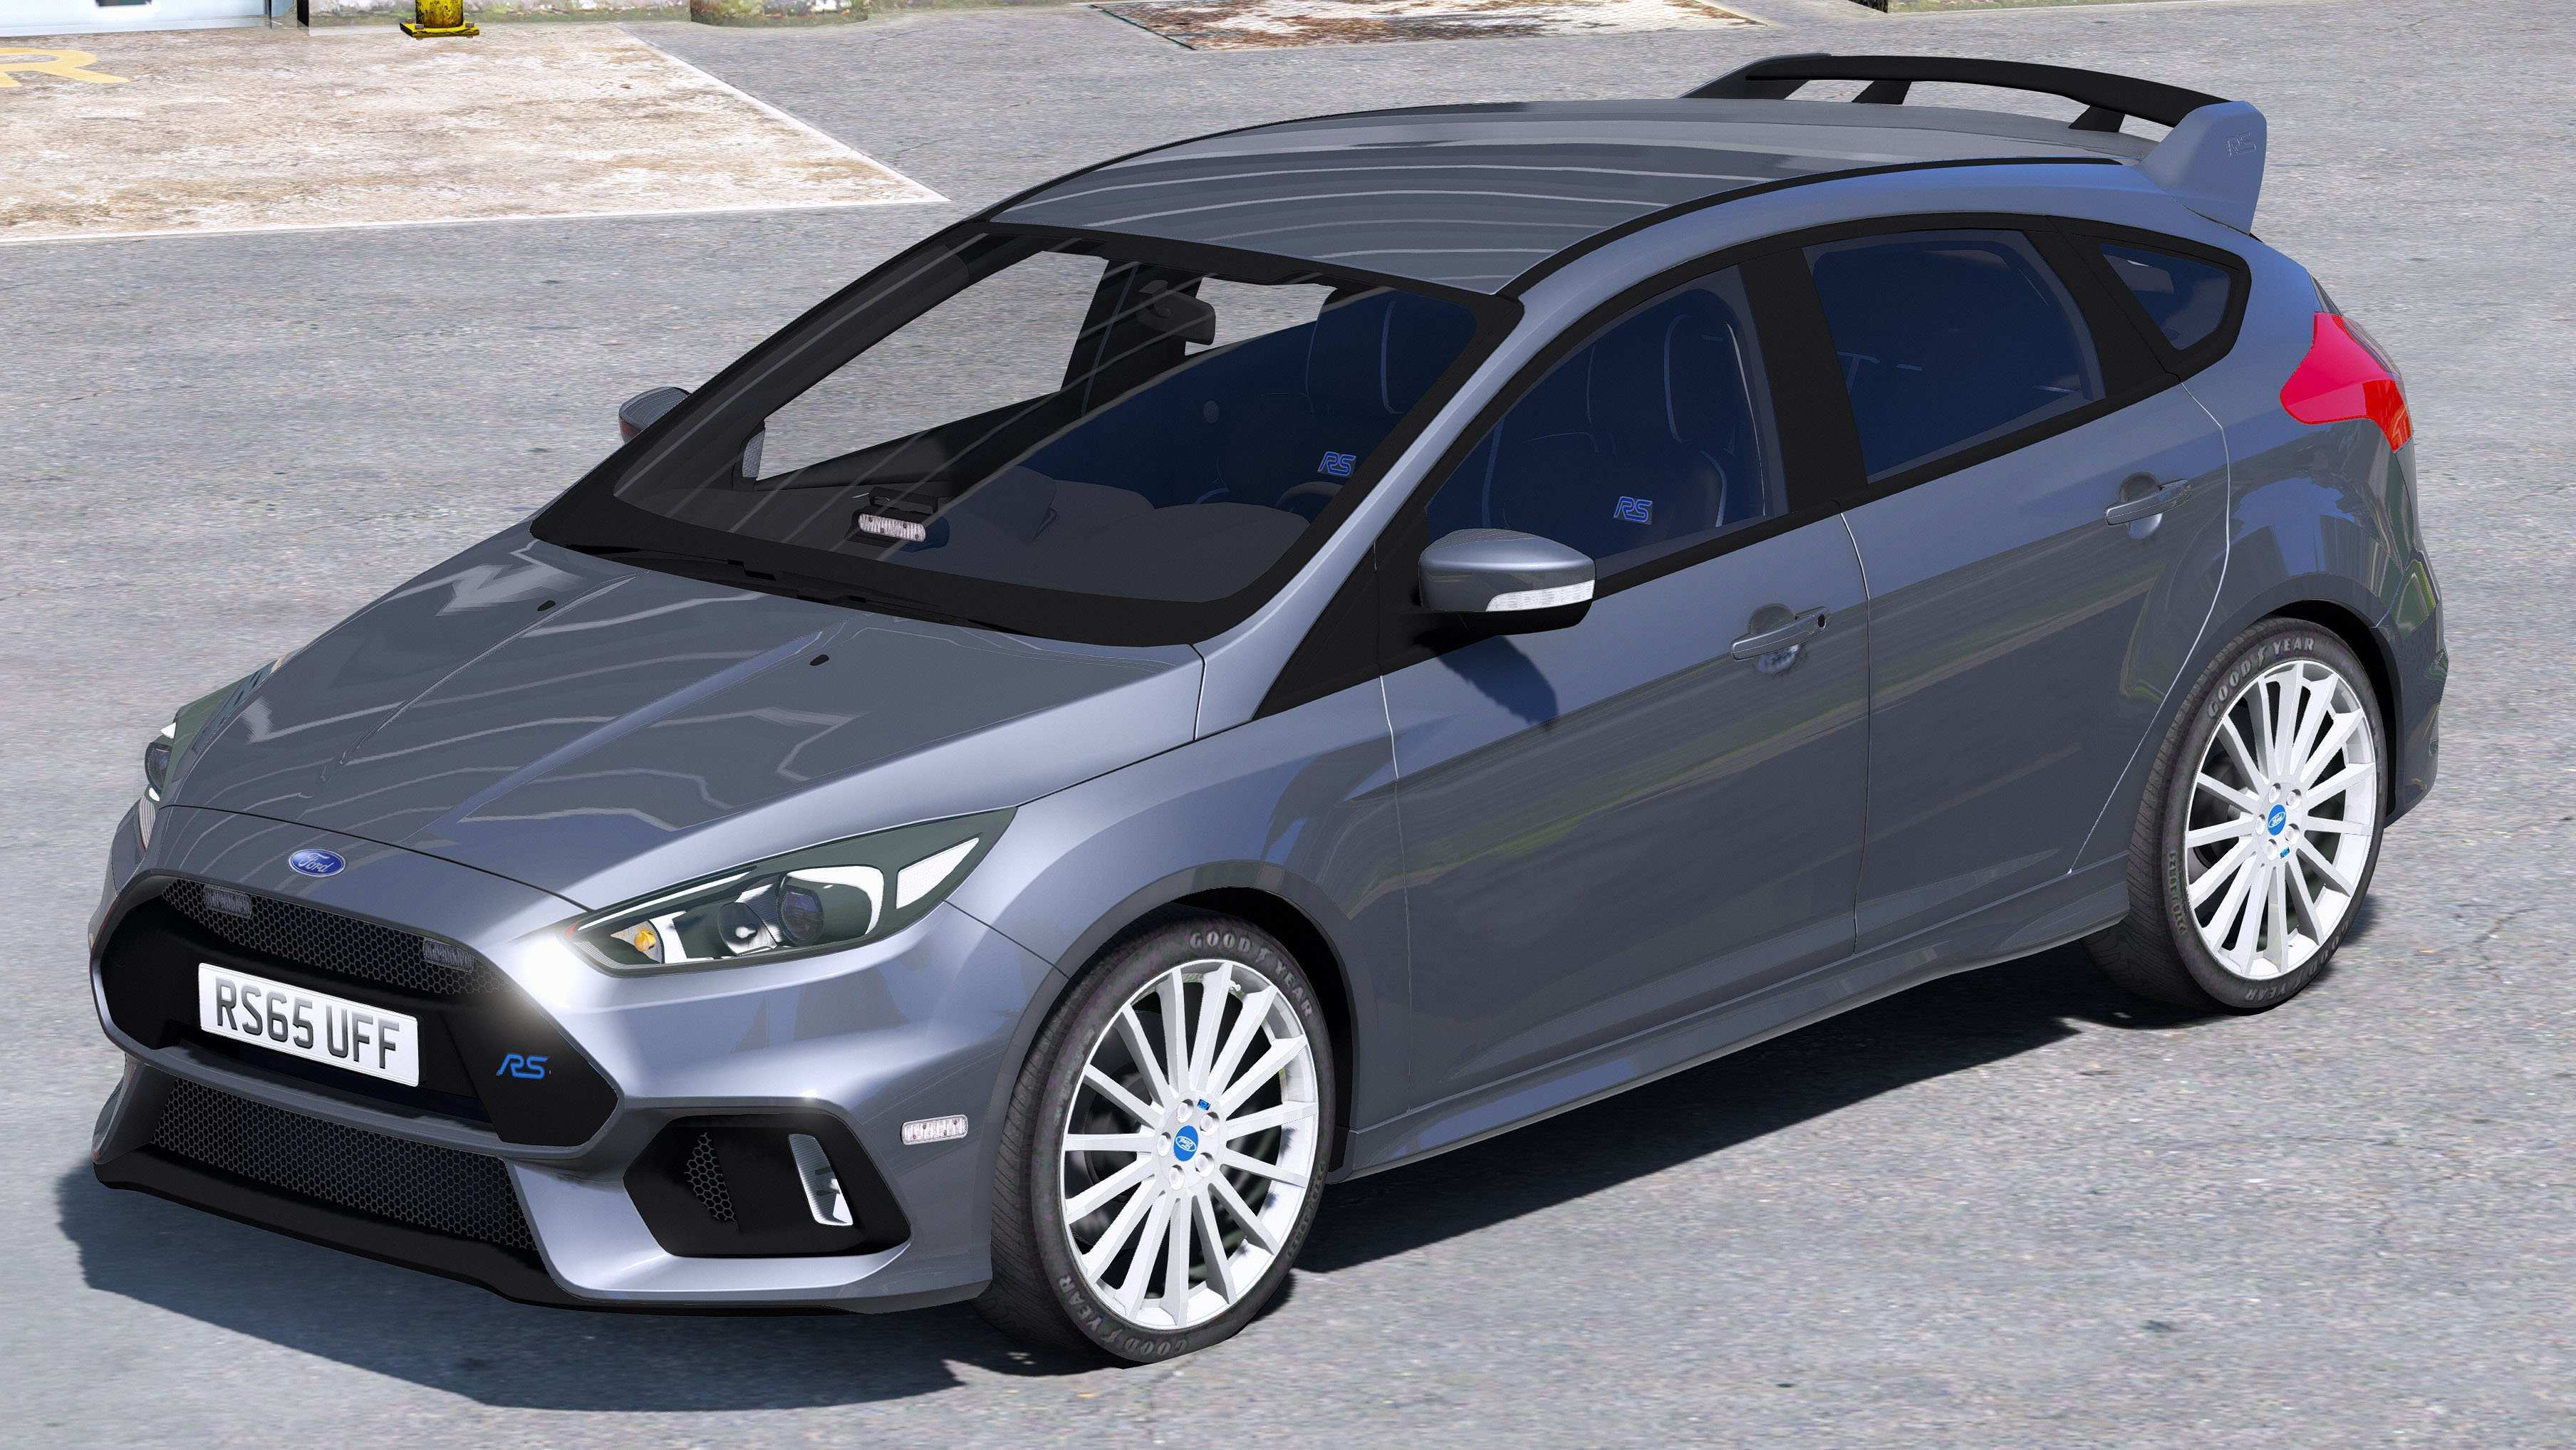 46 A 2019 Ford Focus Rs500 Price And Review